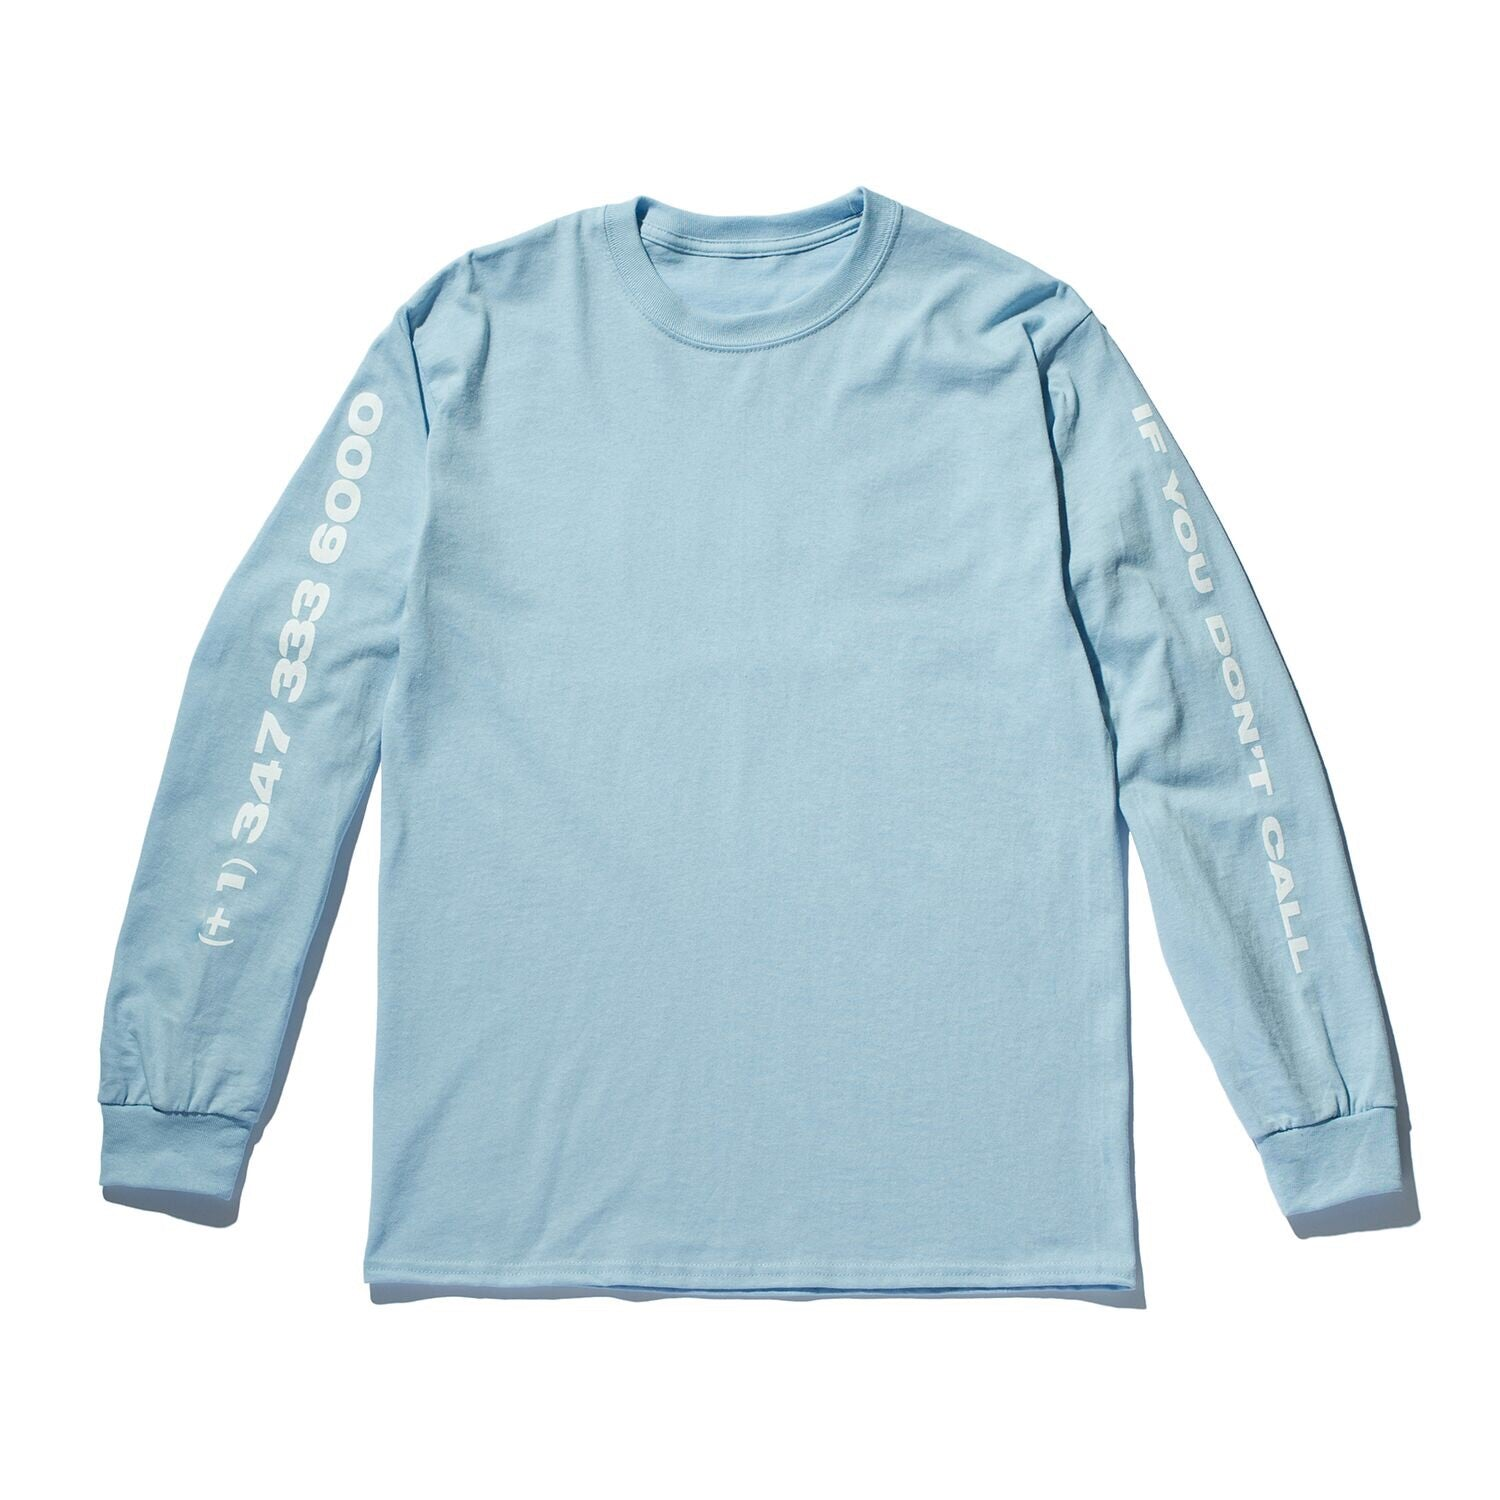 """If You Don't Call"" Long Sleeve - Light Blue"